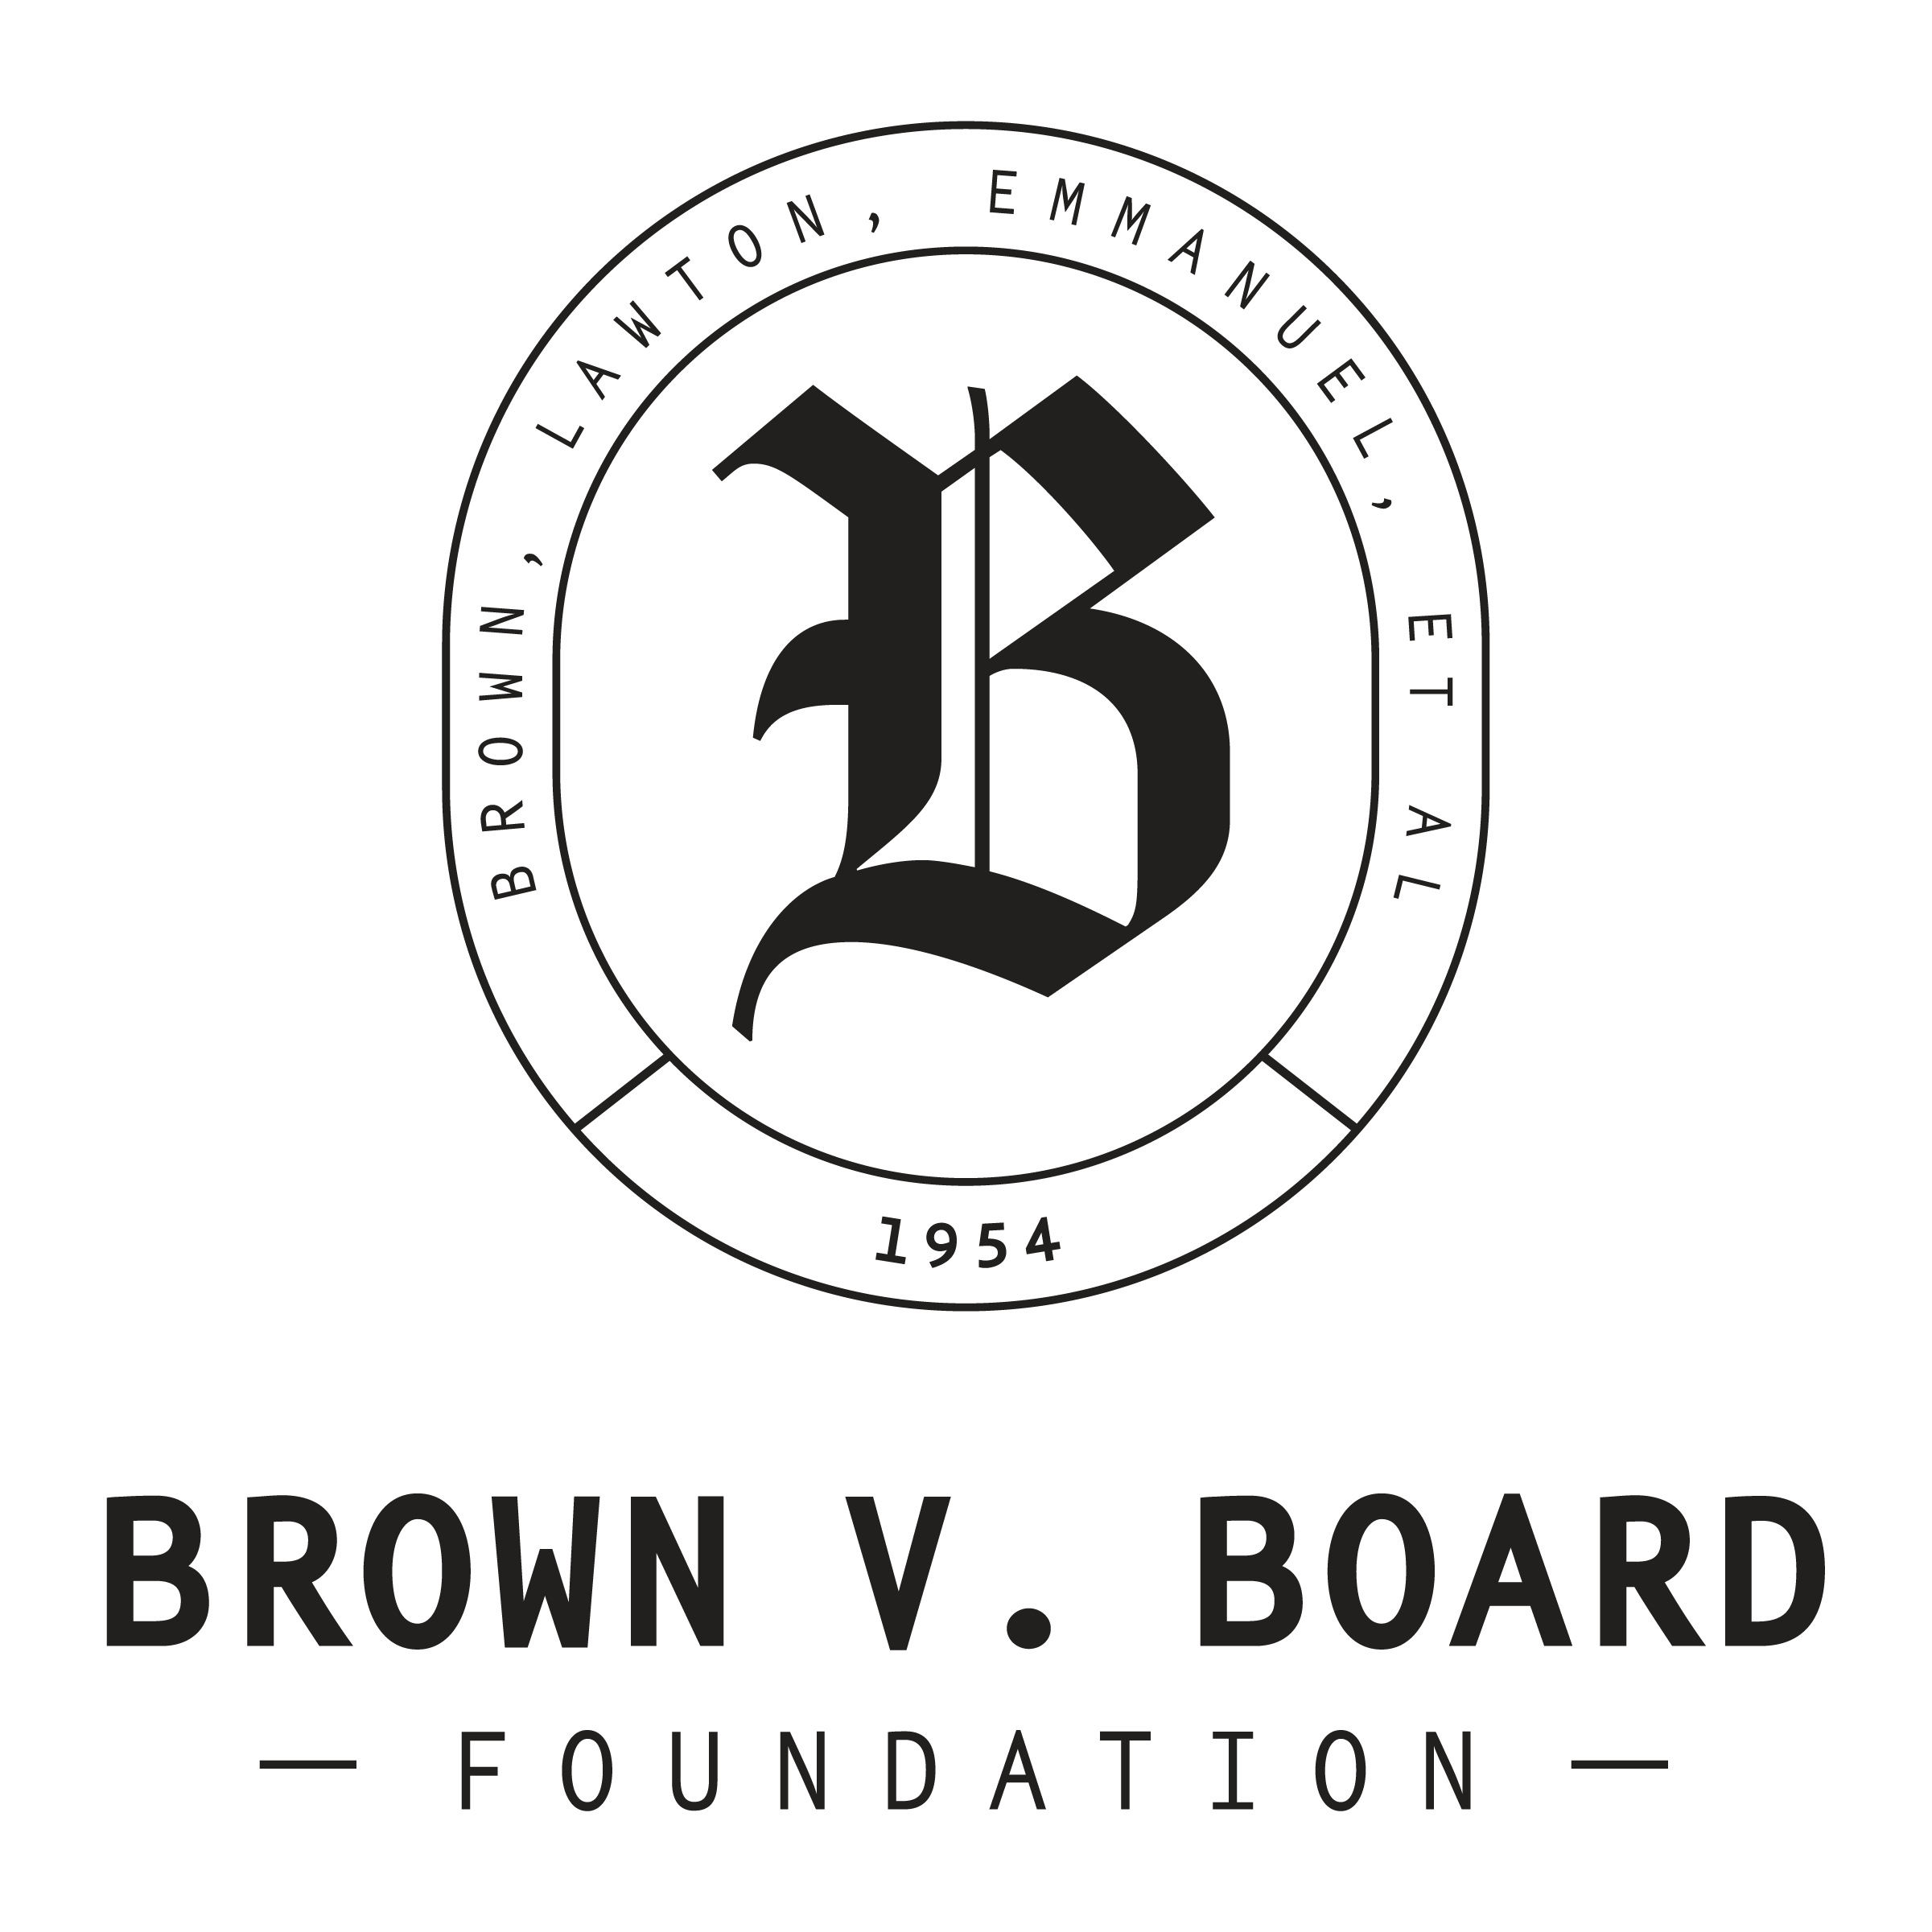 Brown v. Board Foundation, Inc.